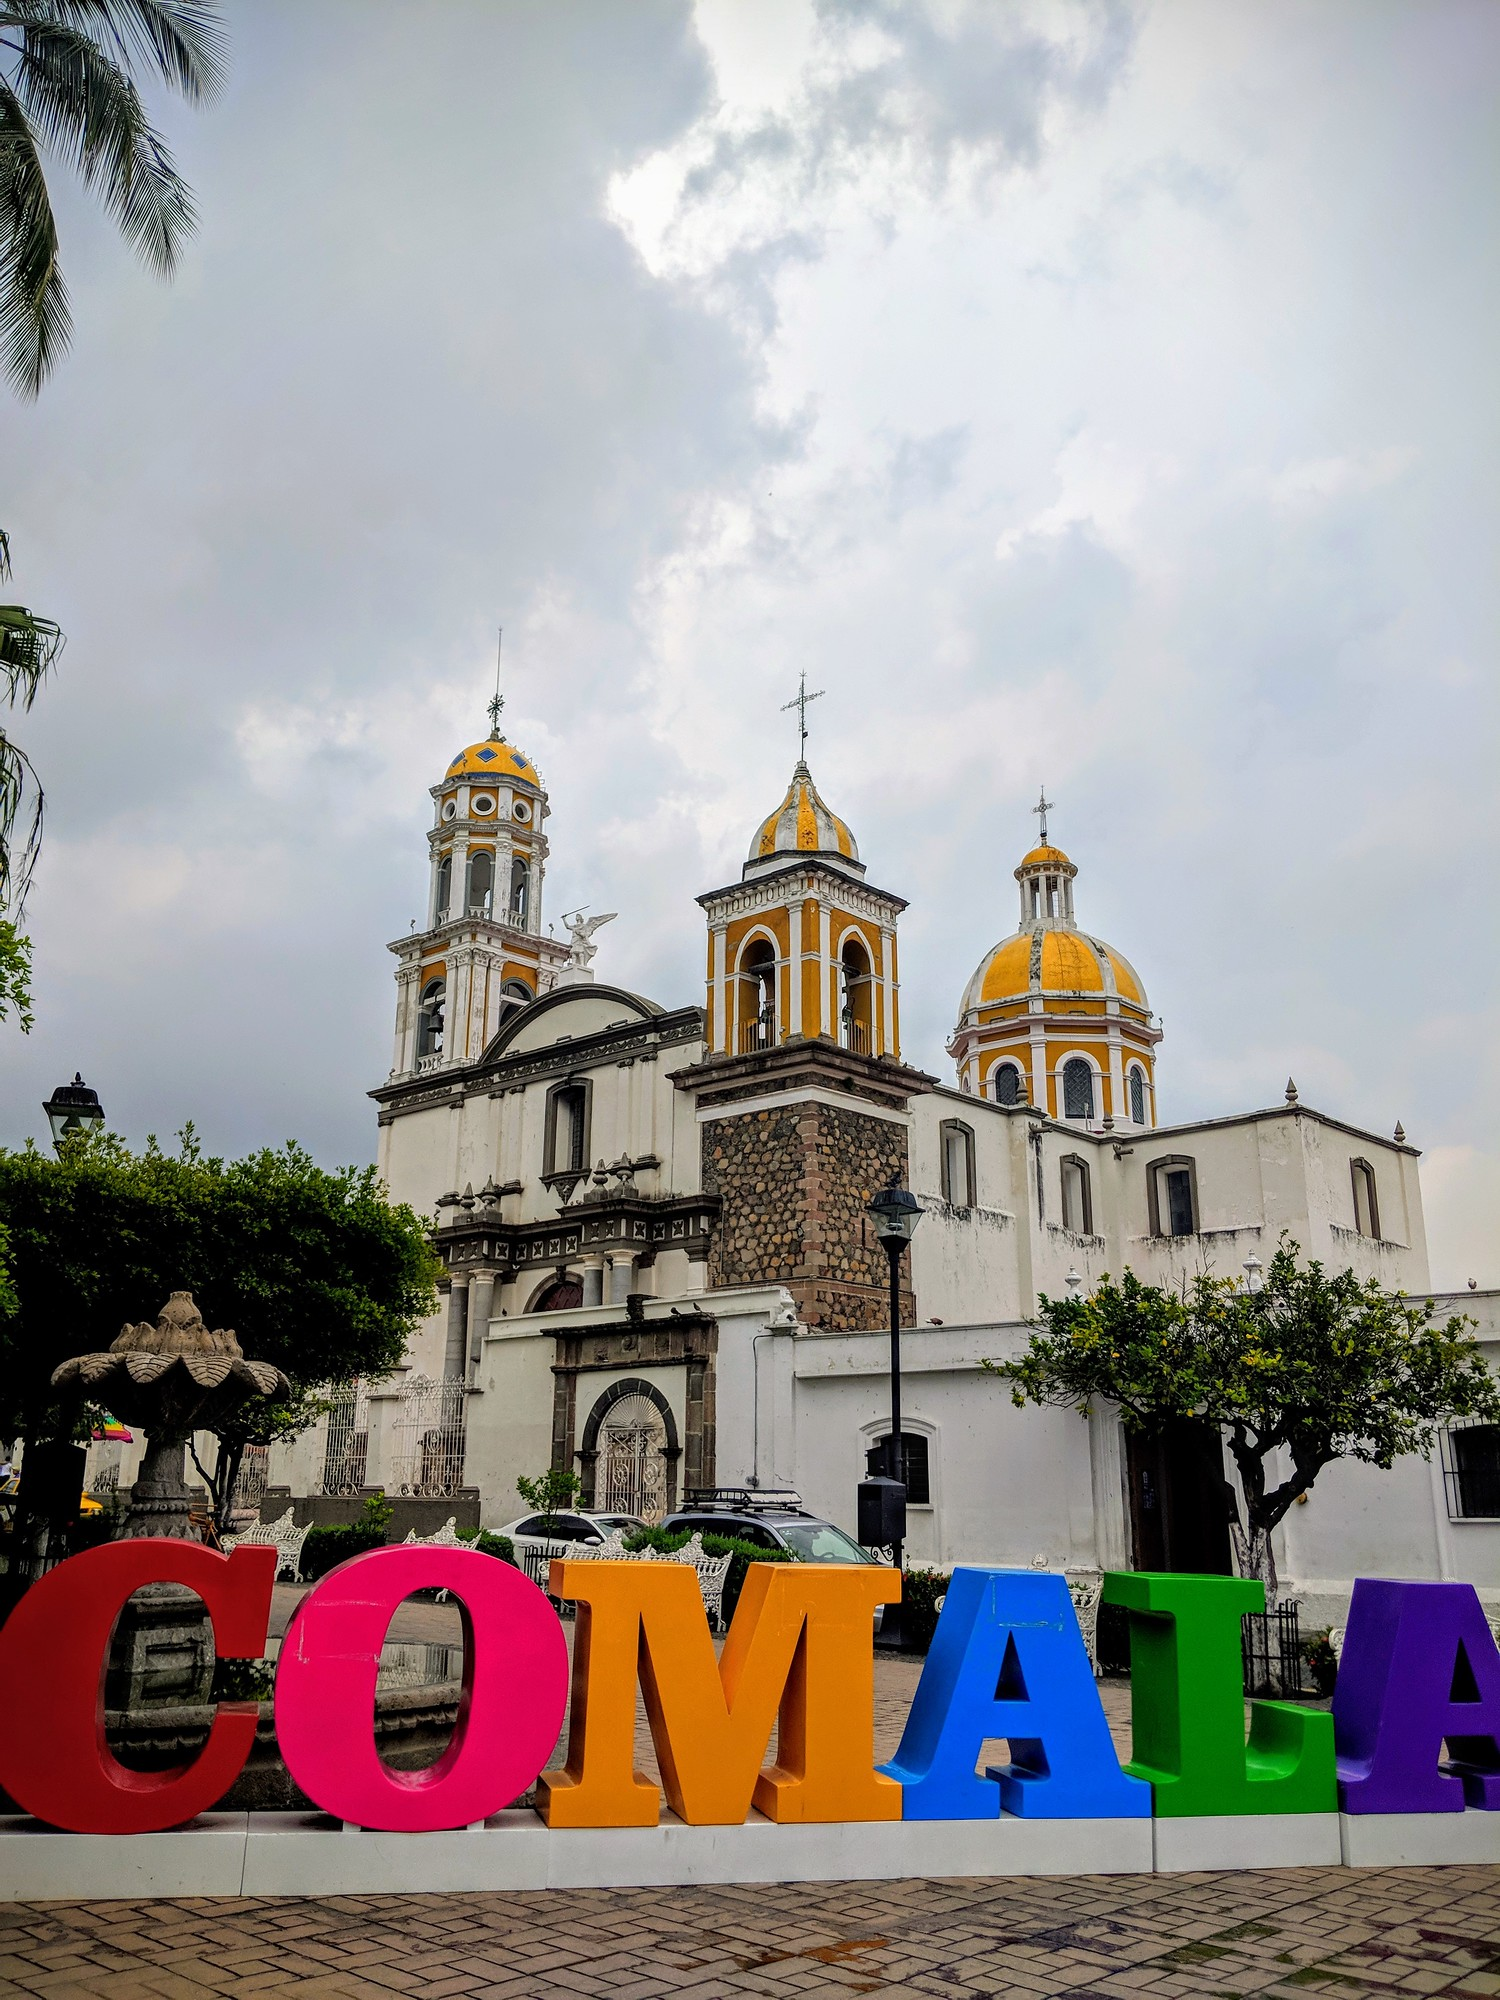 Comala Colima is a Pueblo Magico and one of the best day trips from Colima CIty